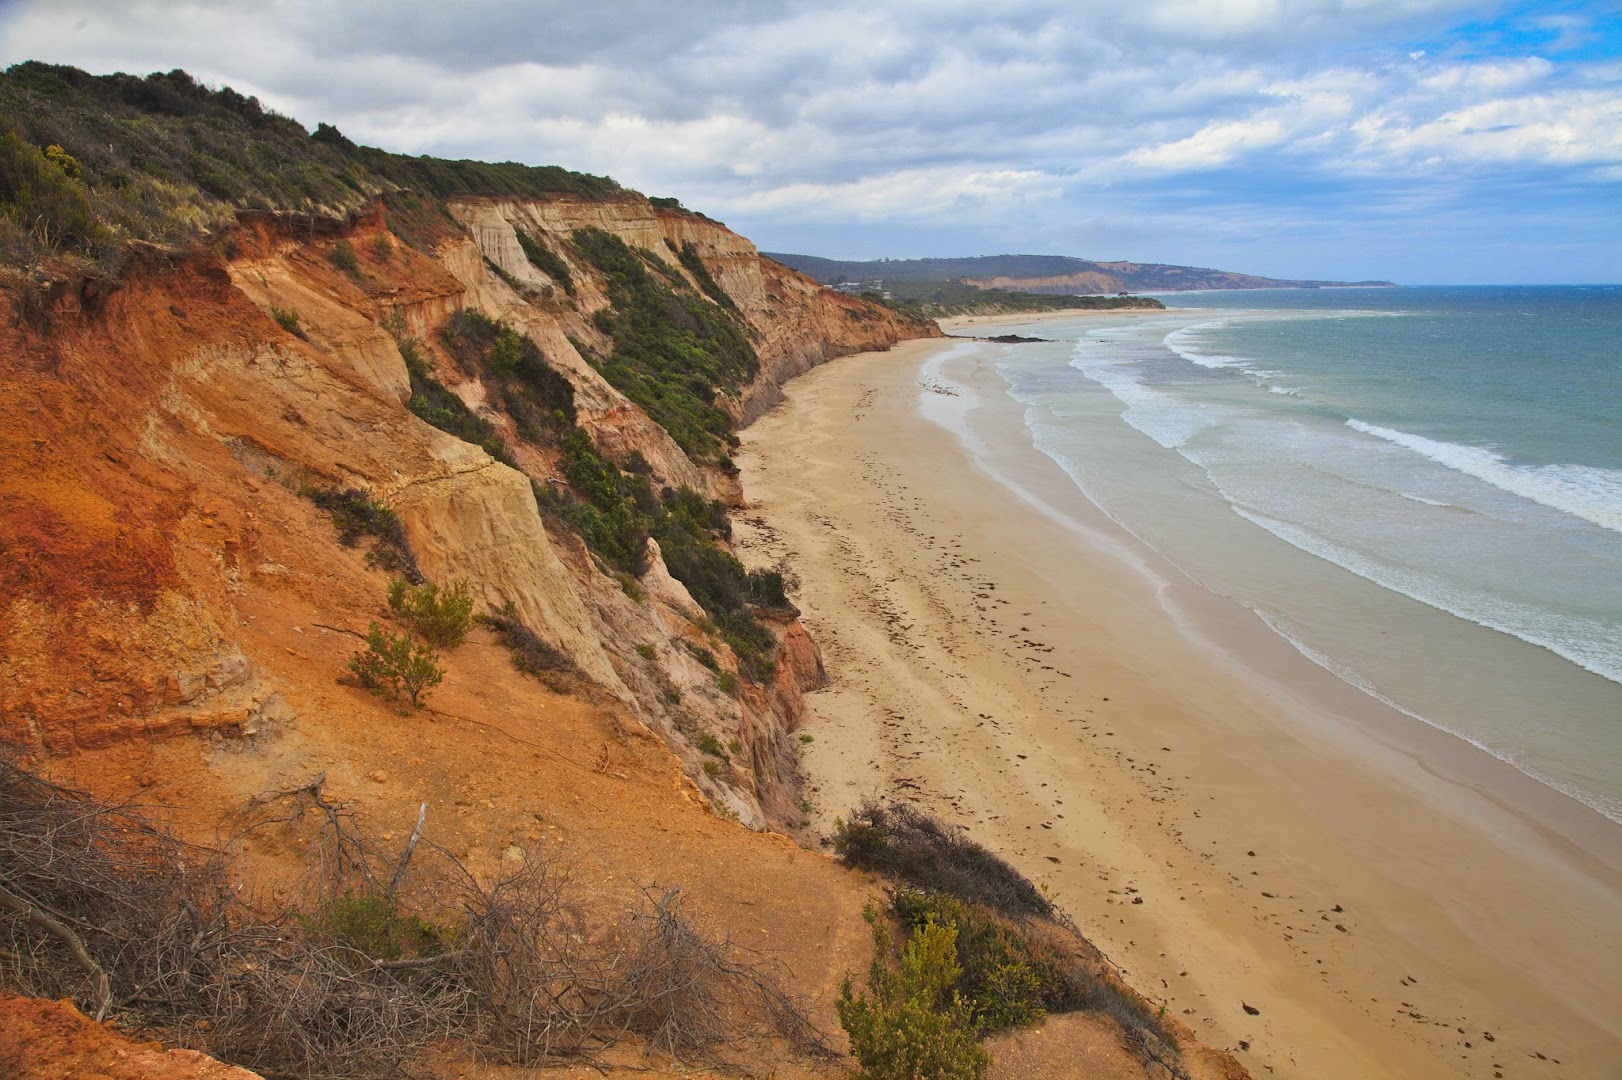 Riding the Great Ocean Road to the west of Melbourne